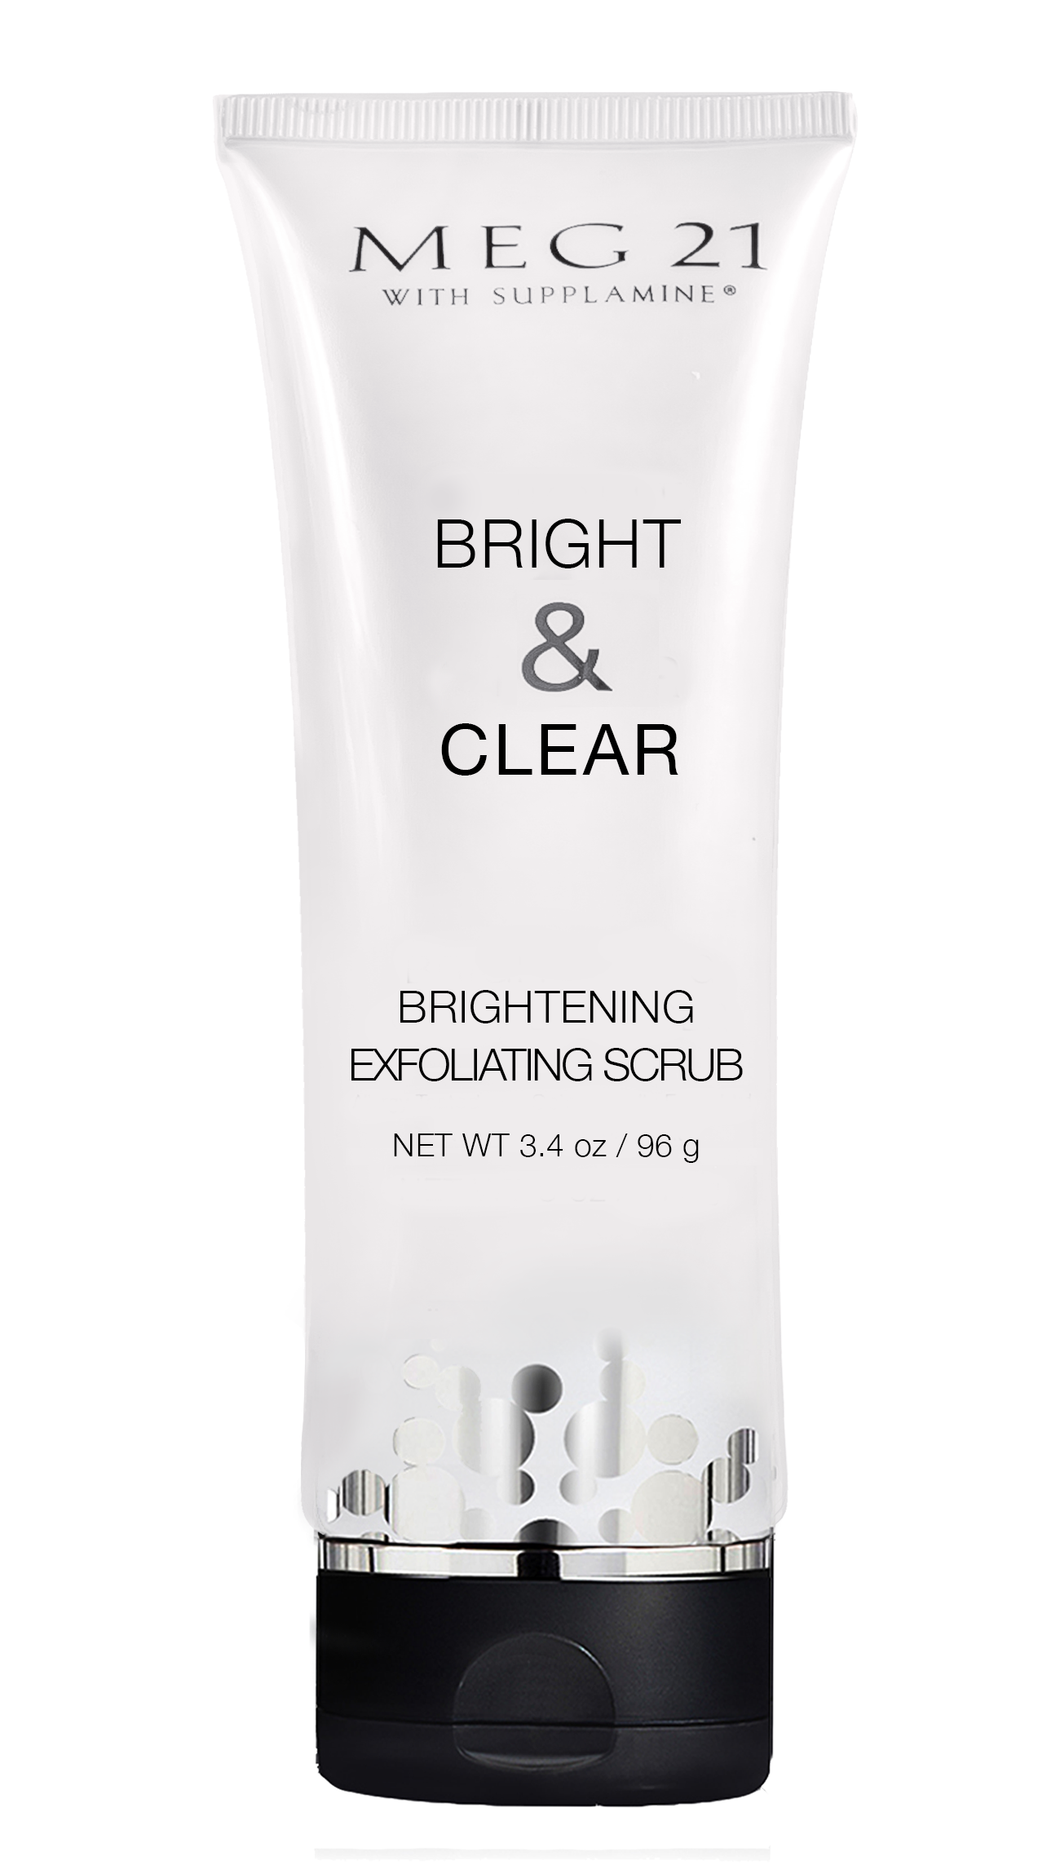 Meg 21 Brightening Exfoliating Scrub